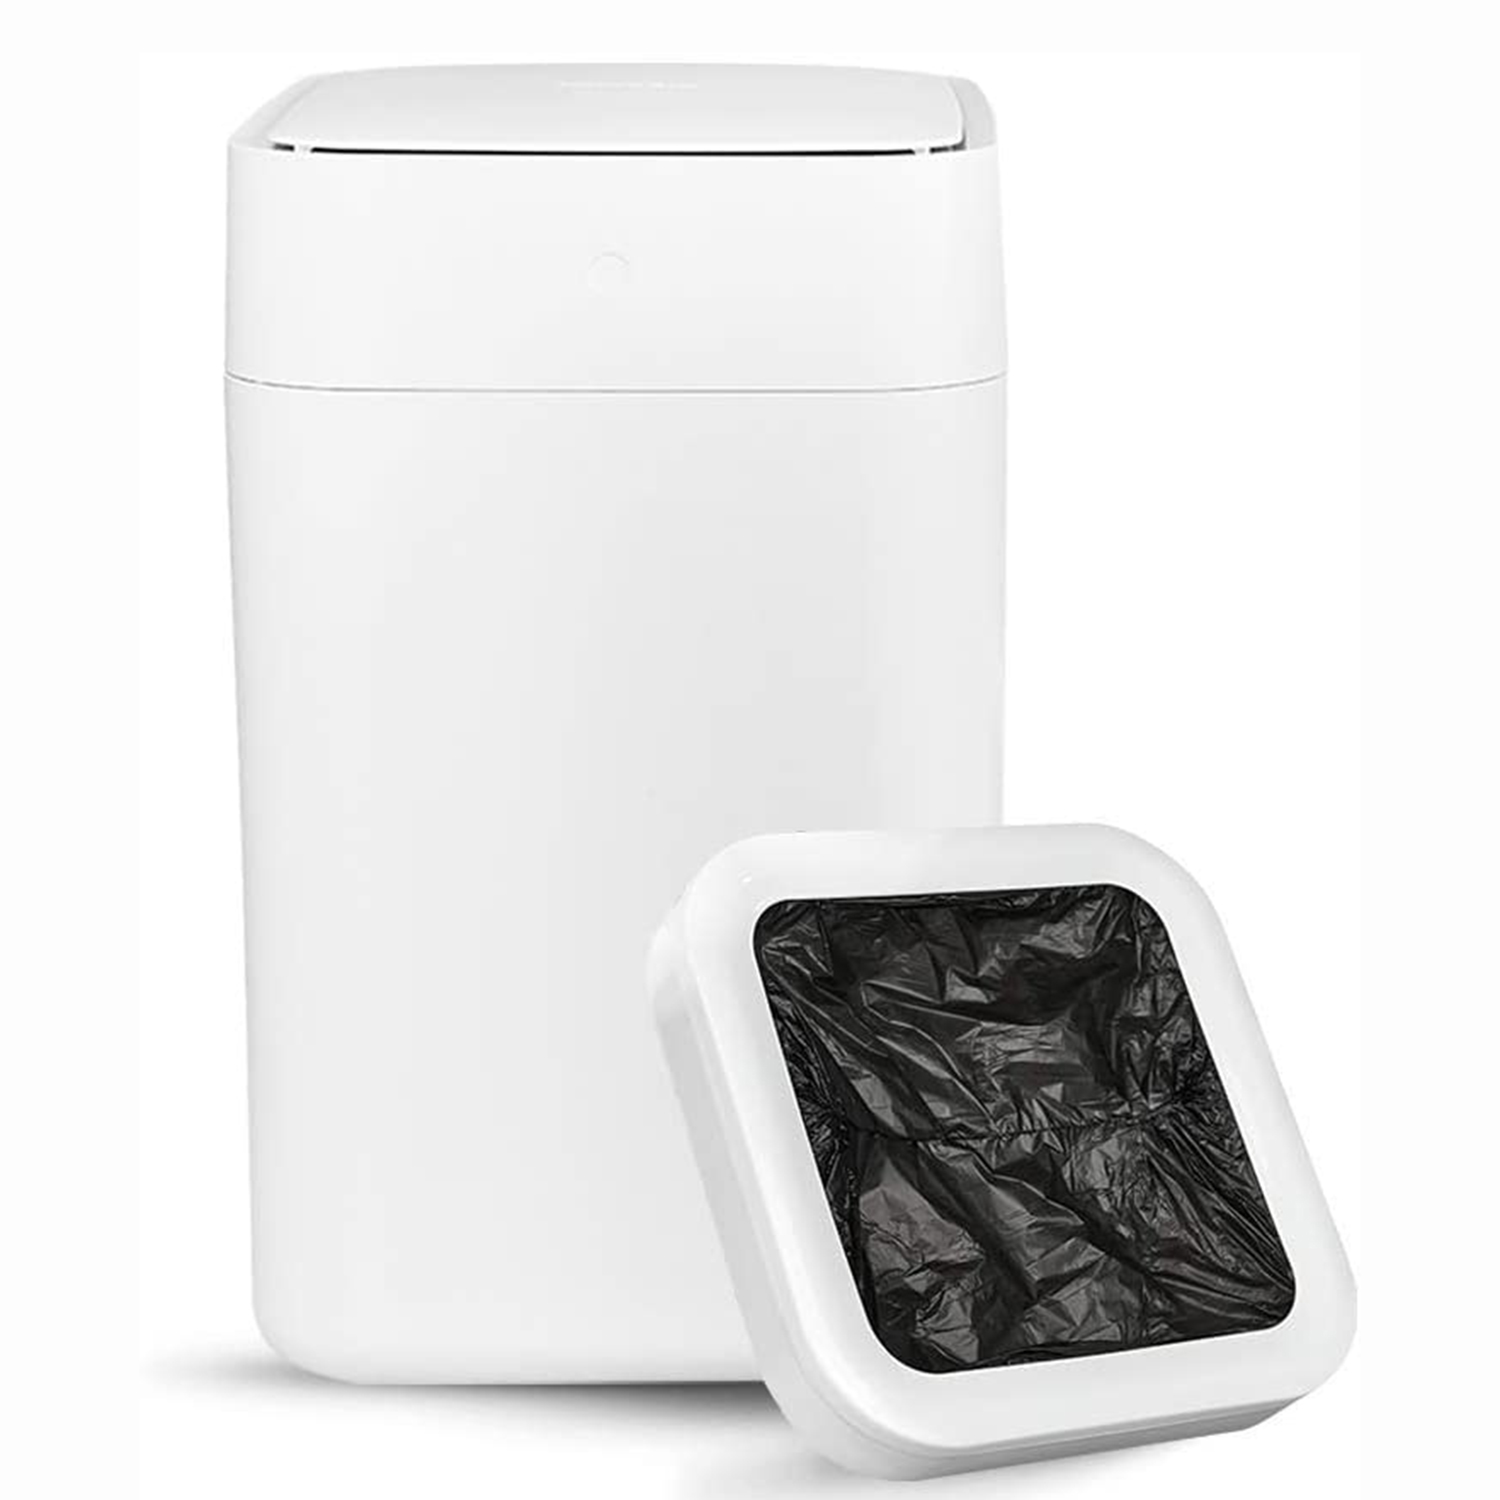 TOWNEW T1 Self-Sealing and Self-Changing 4 Gallon Trash Can